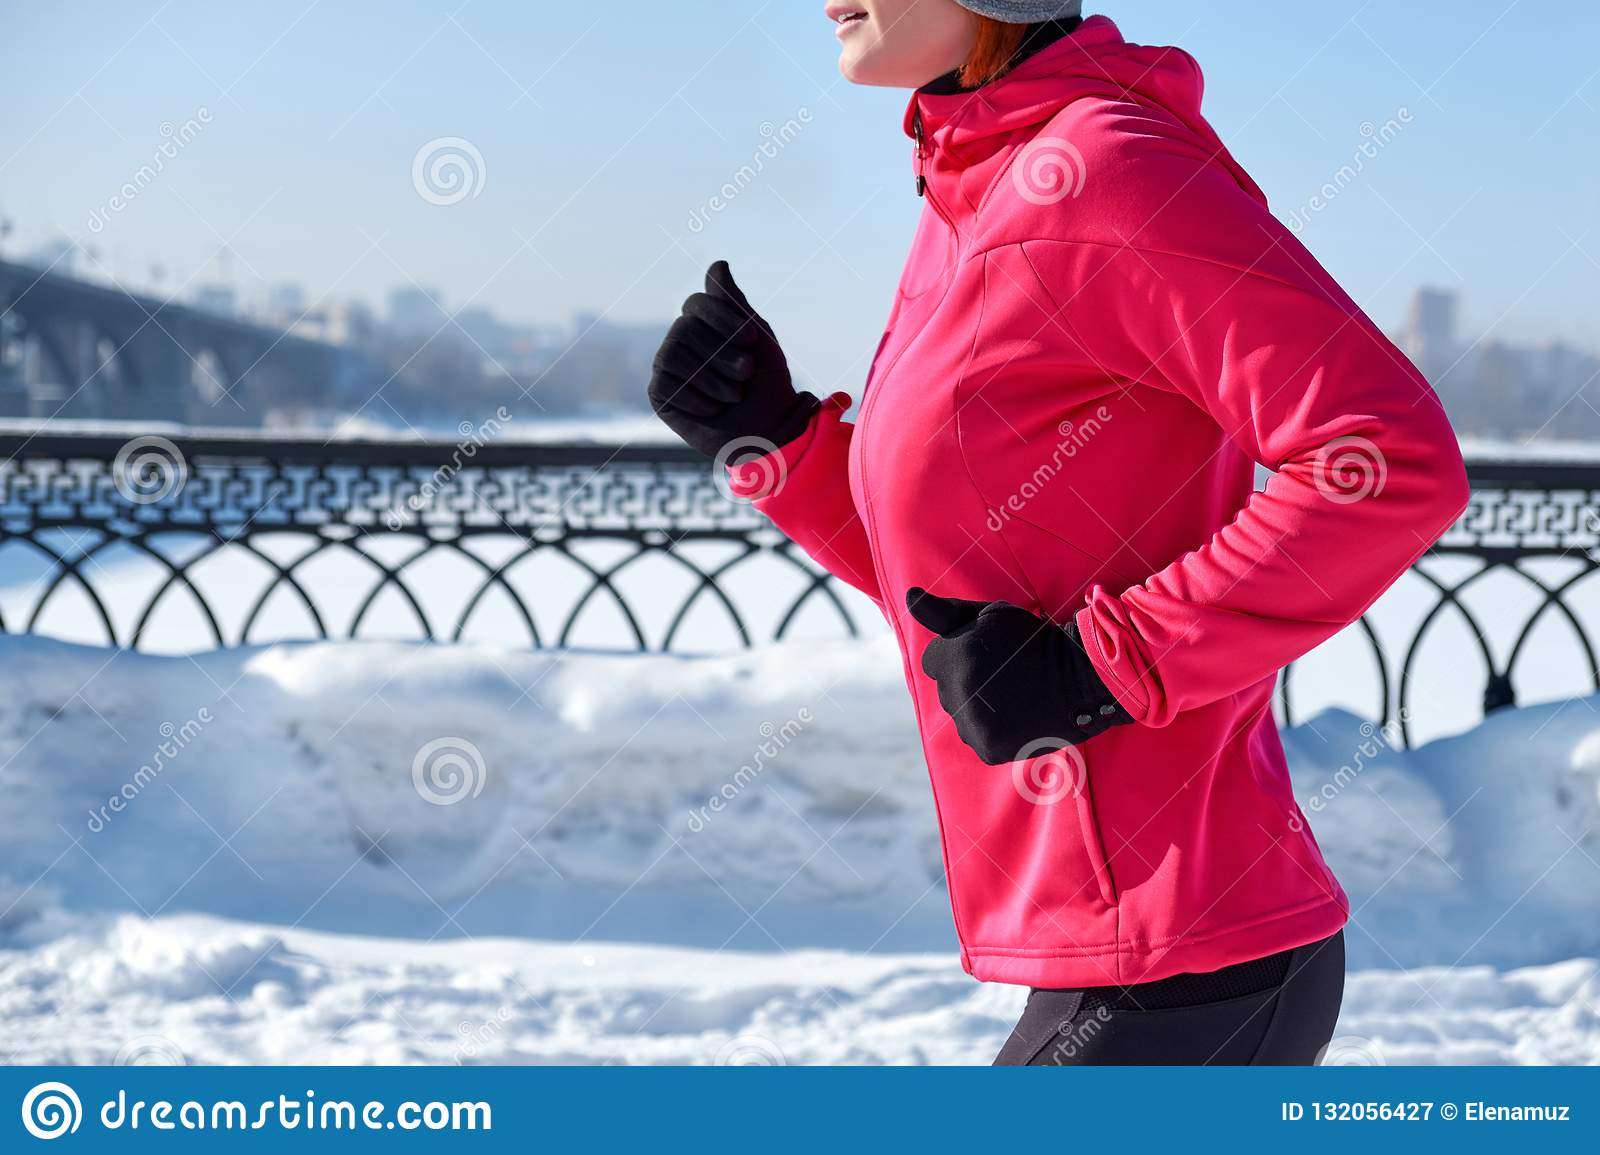 Running sport woman. Female runner jogging in cold winter city wearing warm sporty running clothing and gloves